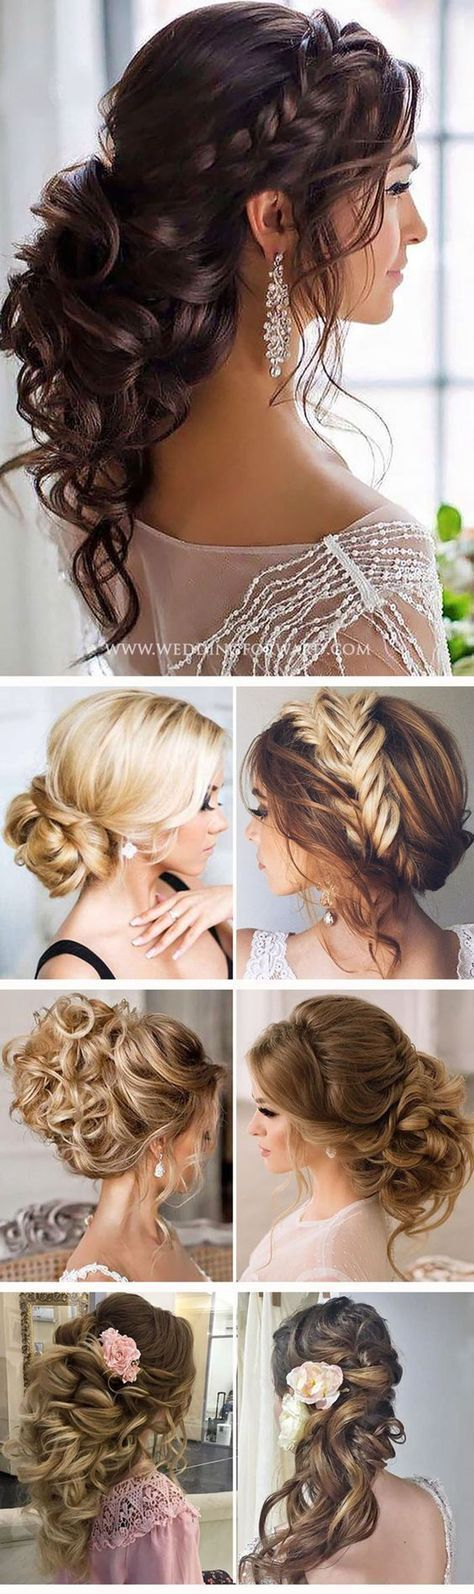 bridal wedding hairstyle inspiration for long hair…